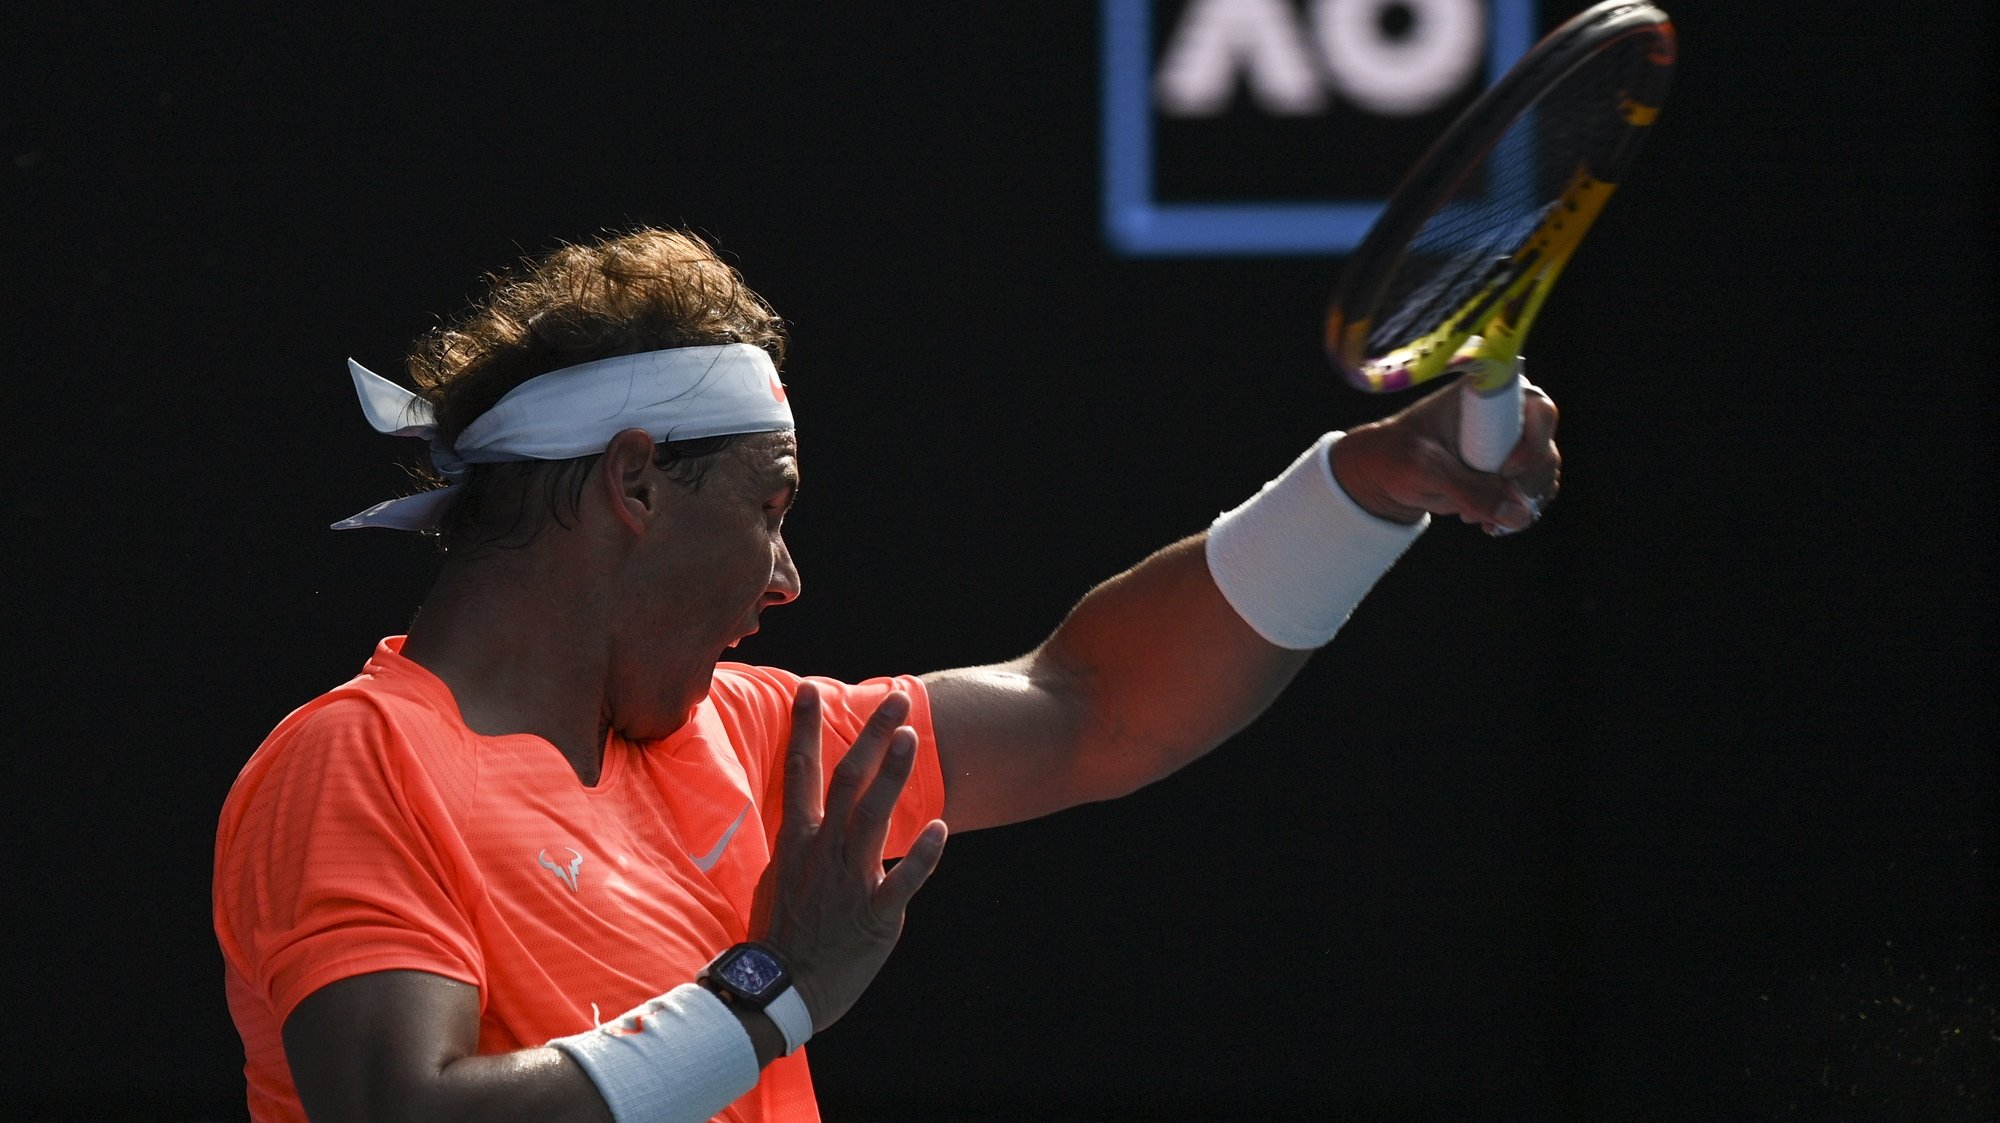 epa09013589 Rafael Nadal of Spain in action during his fourth Round Men's singles match against Fabio Fognini of Italy on Day 8 of the Australian Open Grand Slam tennis tournament in Melbourne, Australia, 15 February 2021.  EPA/DEAN LEWINS